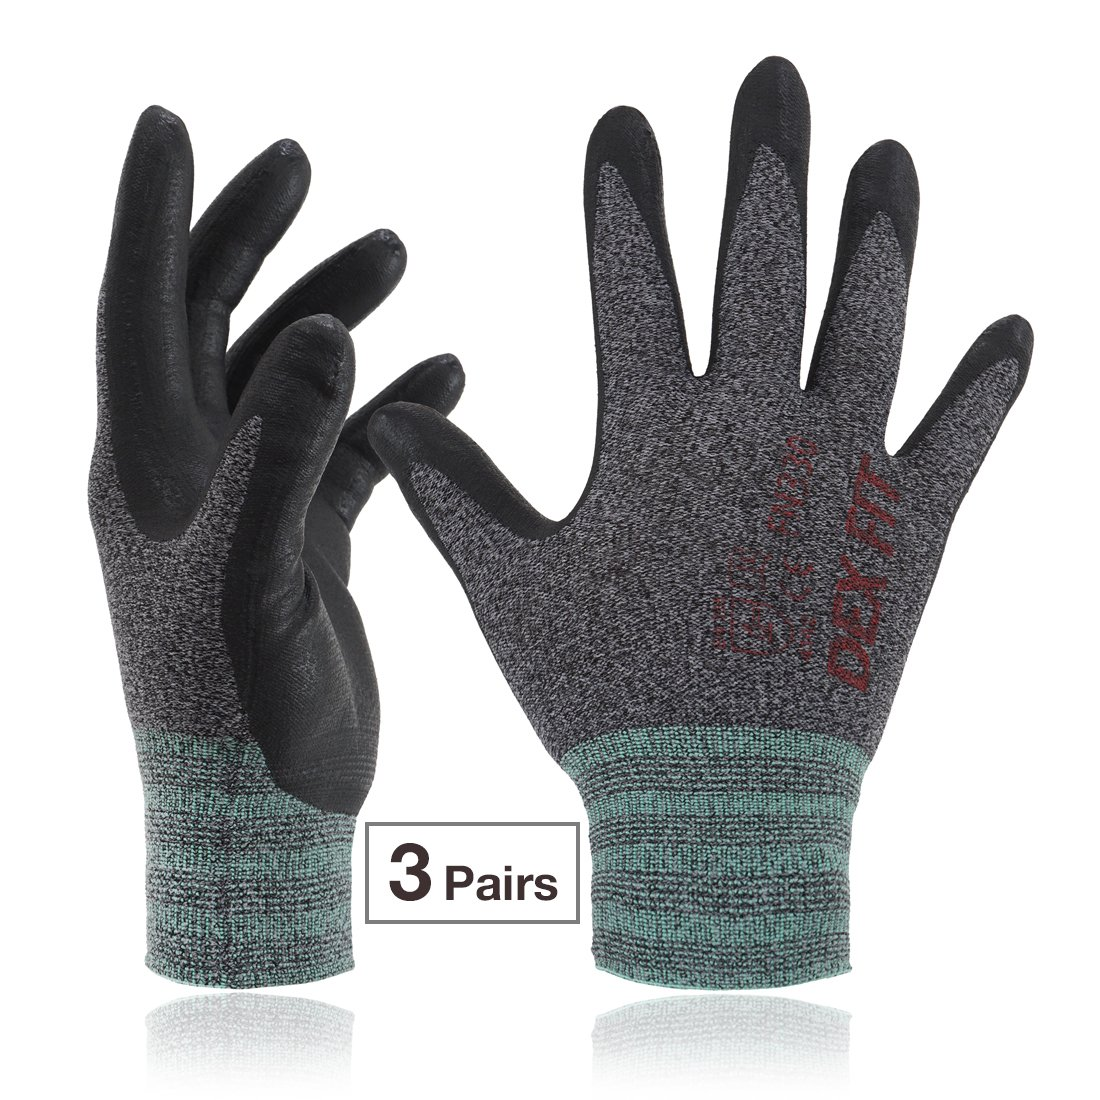 DEX FIT Lightweight Nitrile Work Gloves FN330, 3D Comfort Stretch Fit, Durable Power Grip Foam Coated, Smart Touch, Thin Machine Washable, Black Grey Small 3 Pairs Pack